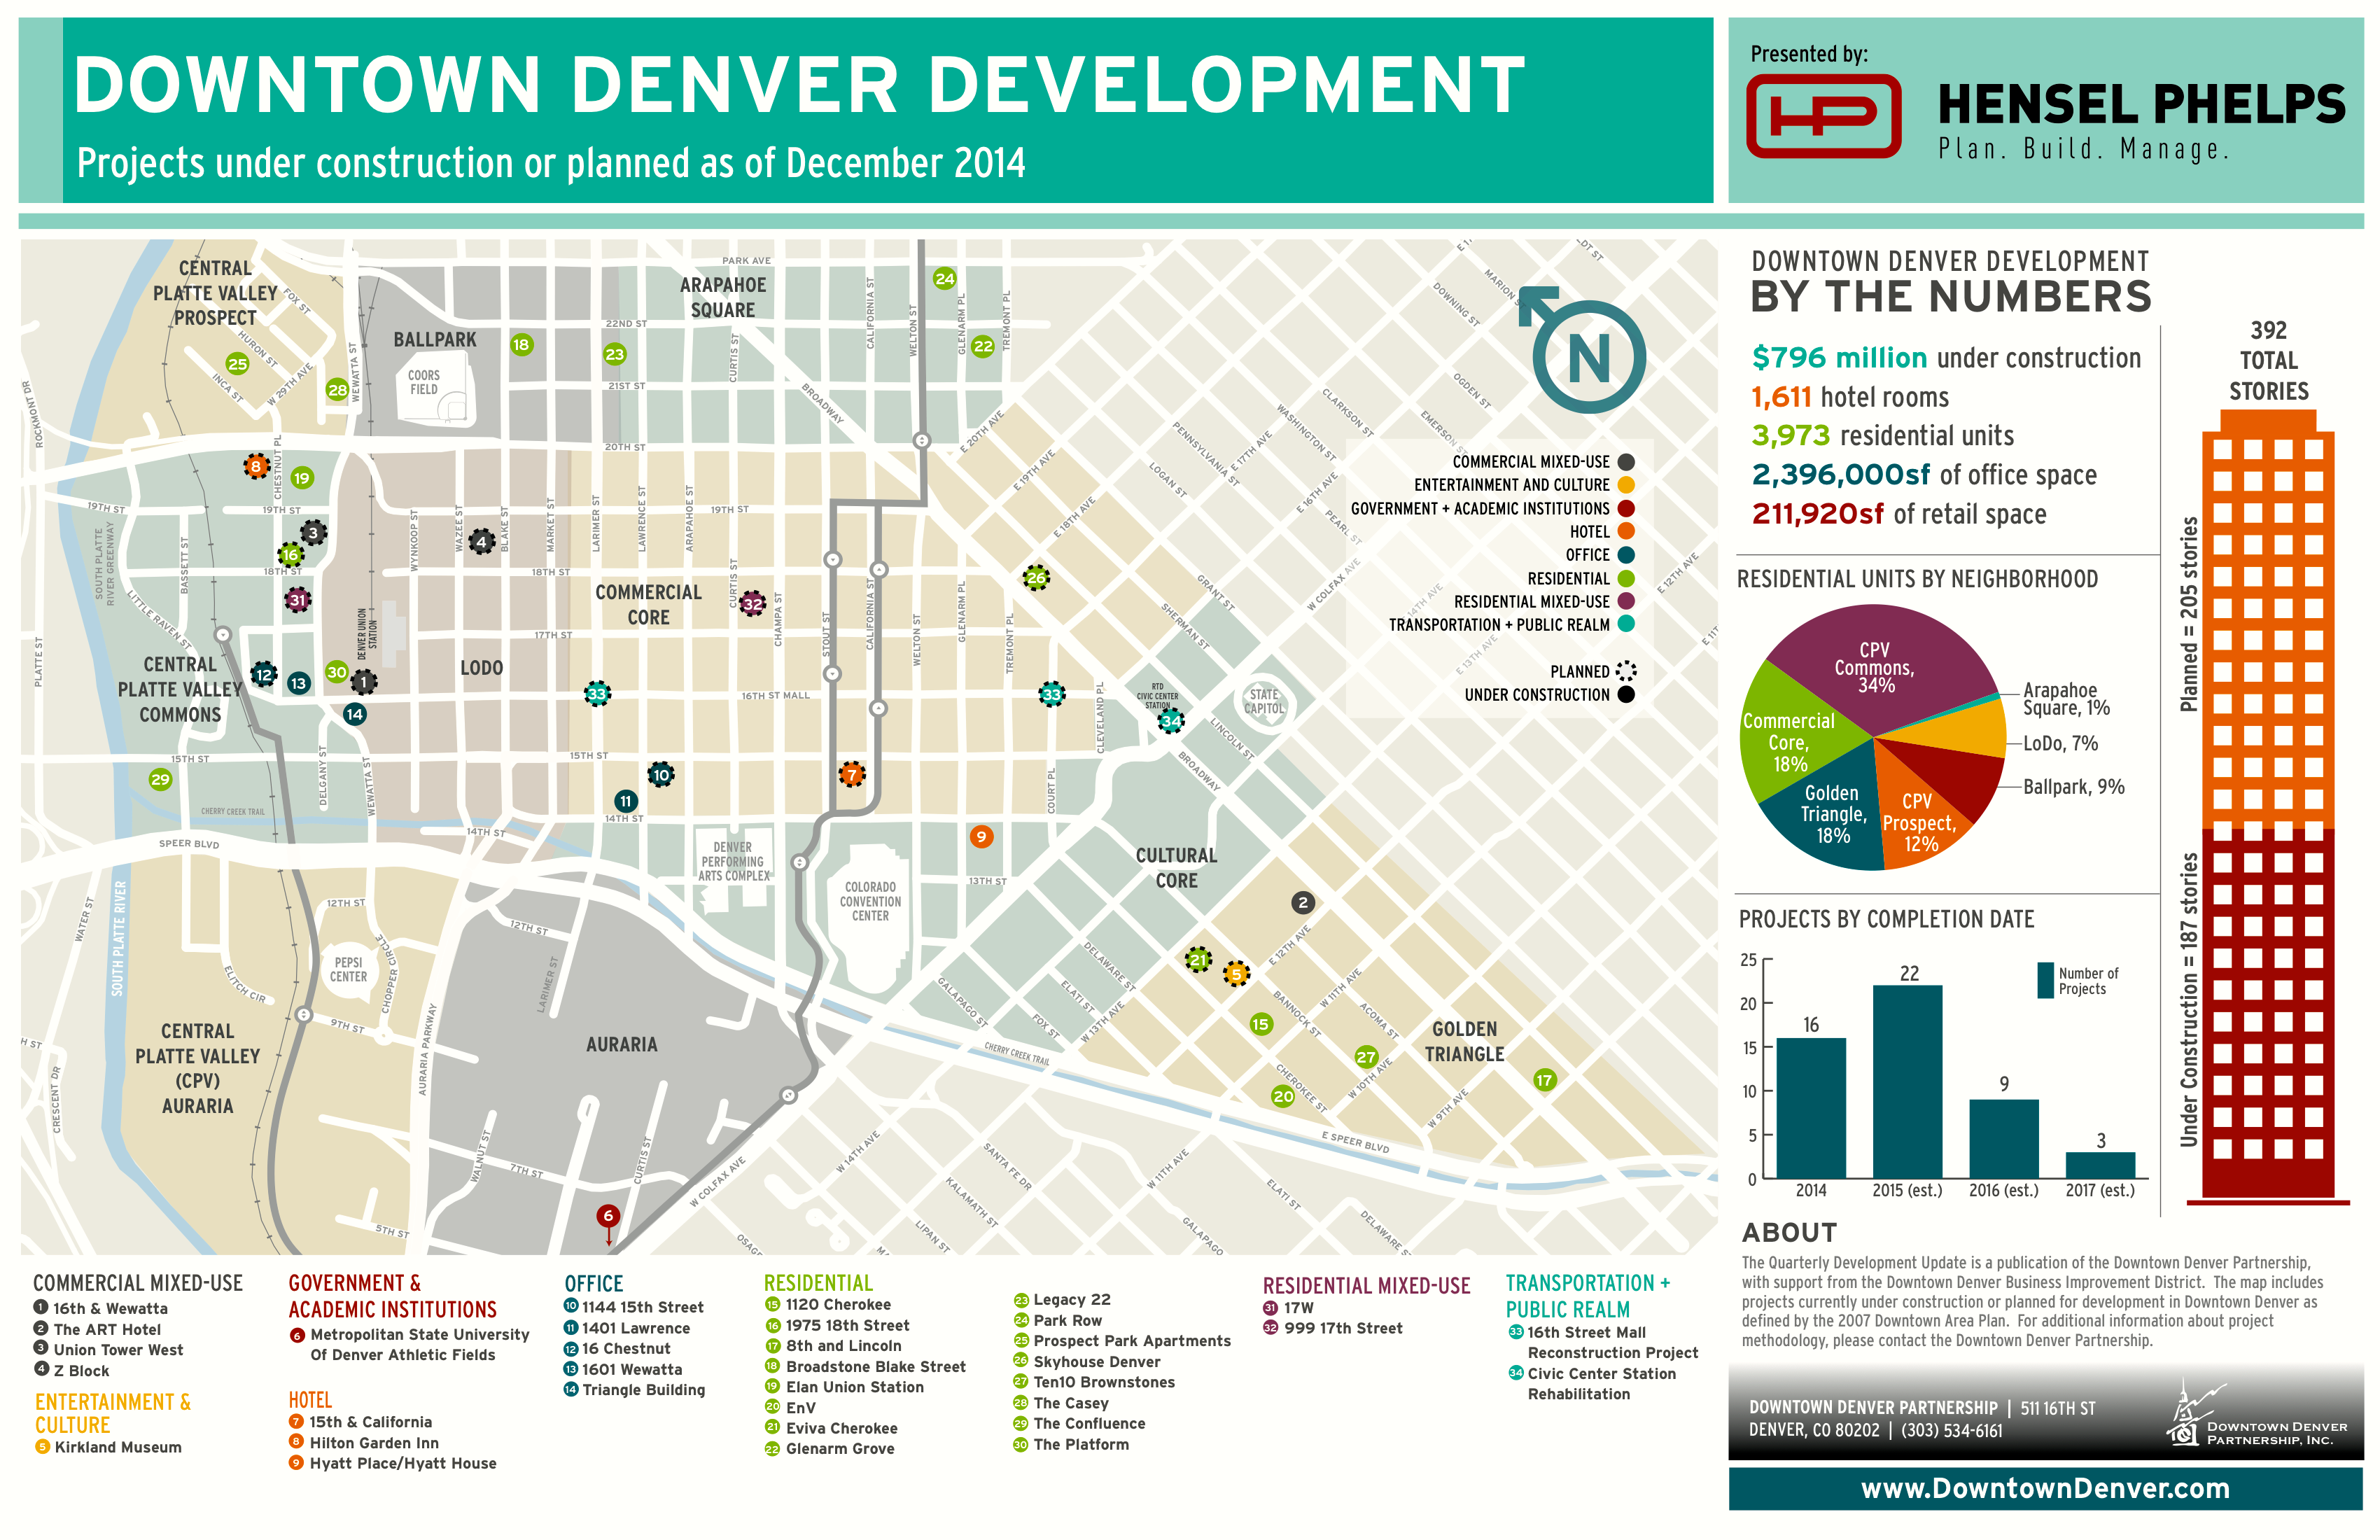 $800 million in projects under construction in downtown Denver on